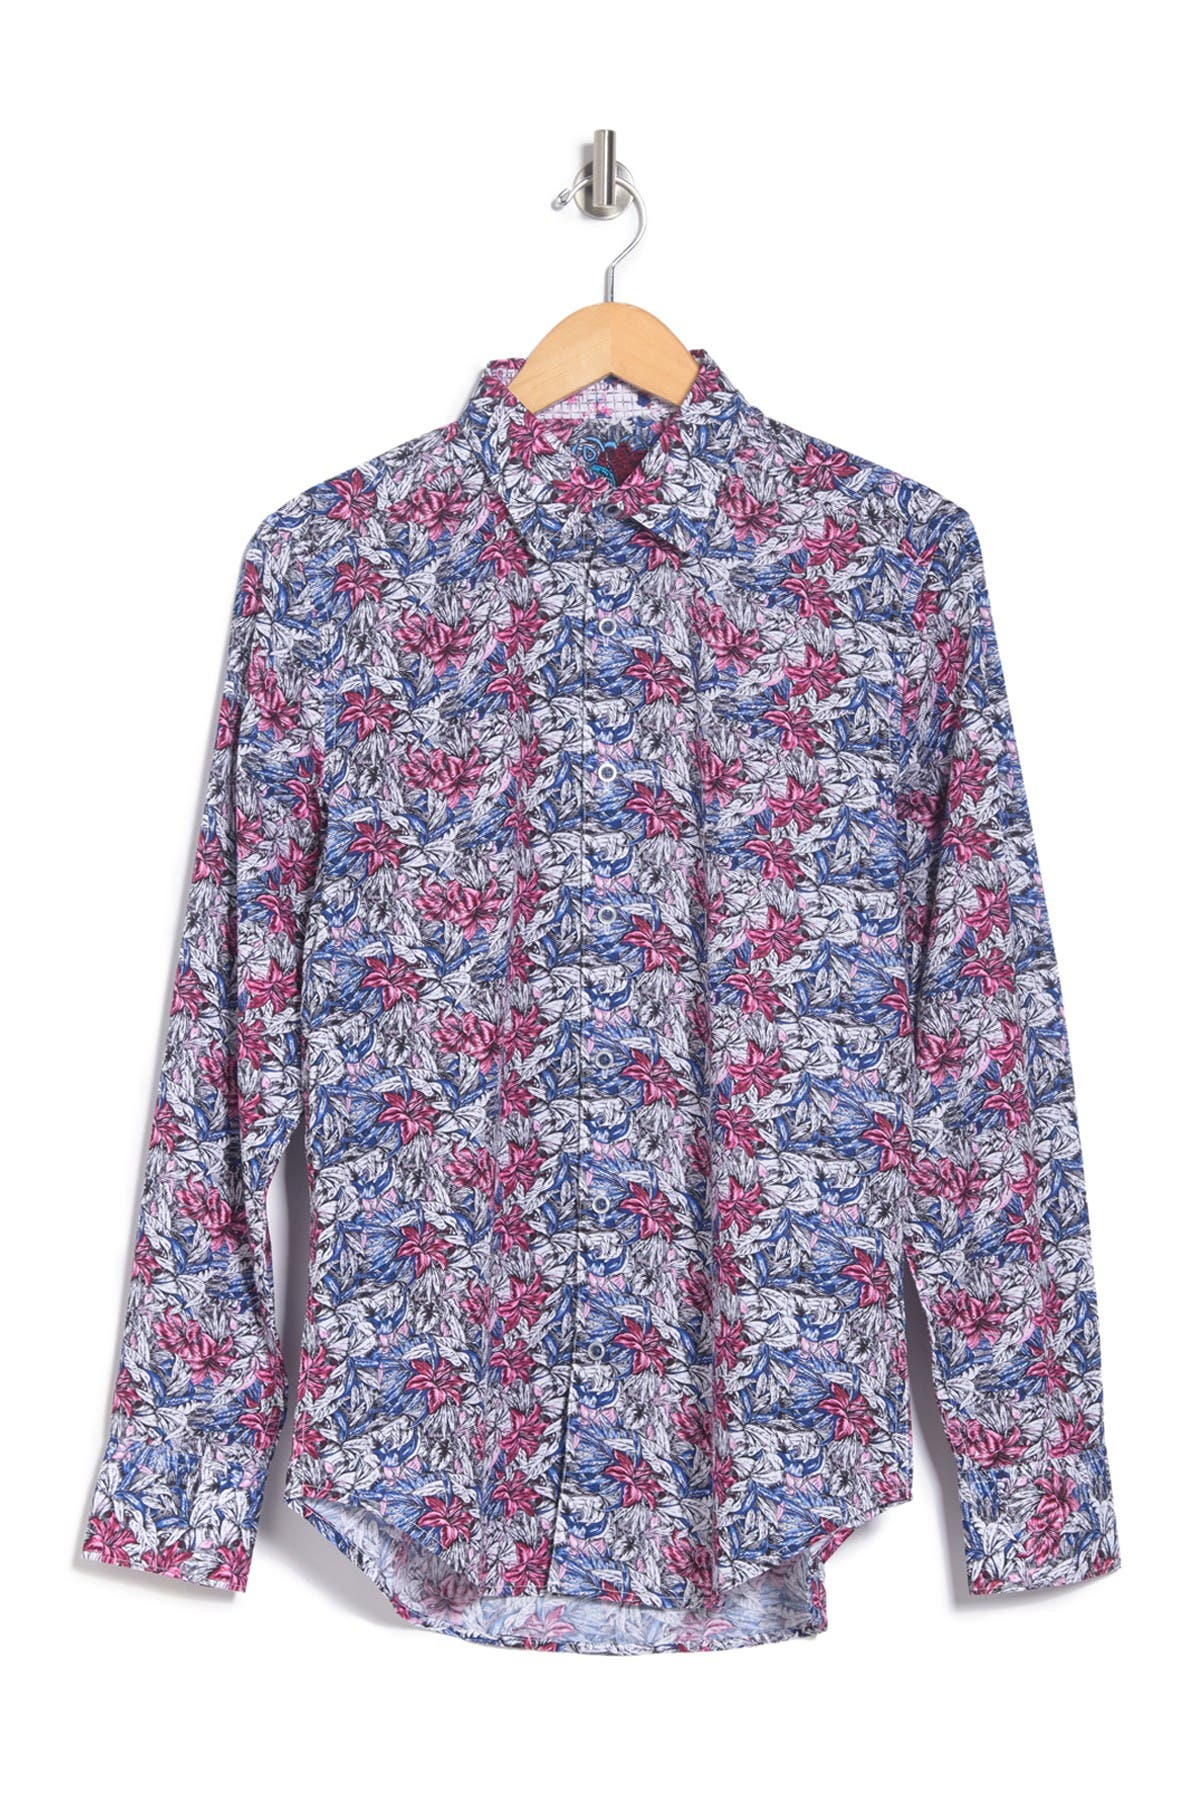 Image of Robert Graham Bloomfield Printed Classic Fit Shirt